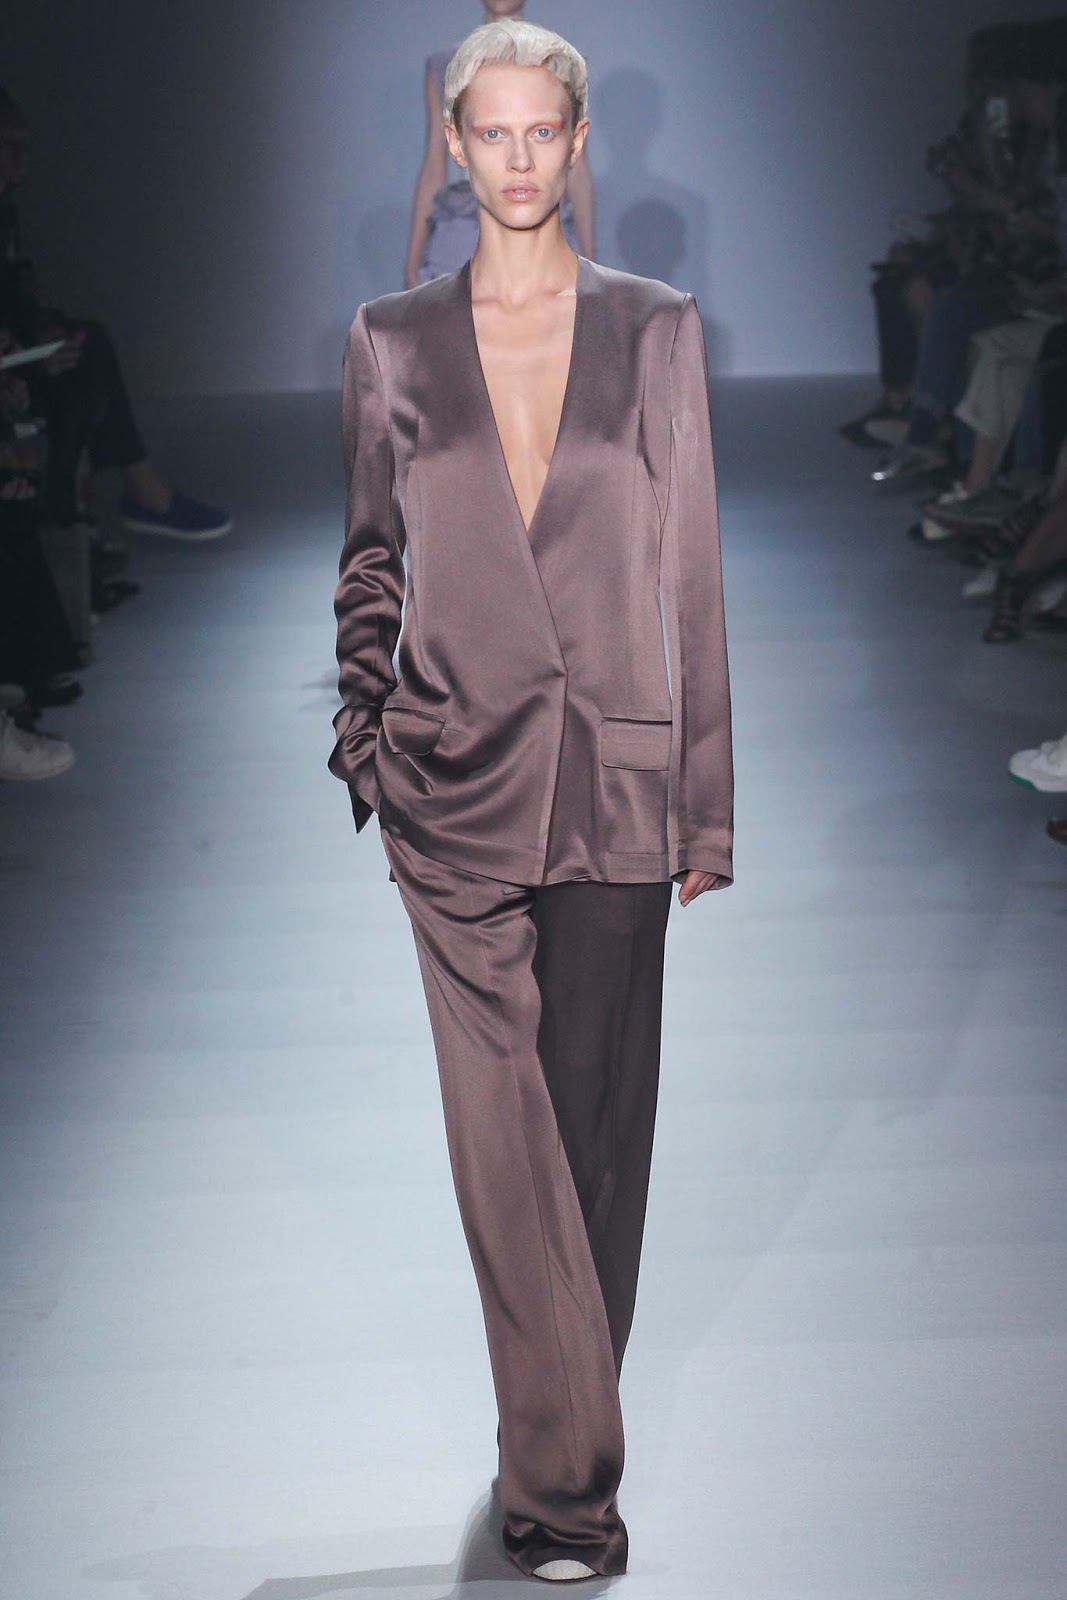 Haider Ackermann / Spring/Summer 2015 trends / trouser suit / styling tips and outfit inspiration / via fashioned by love british fashion blog